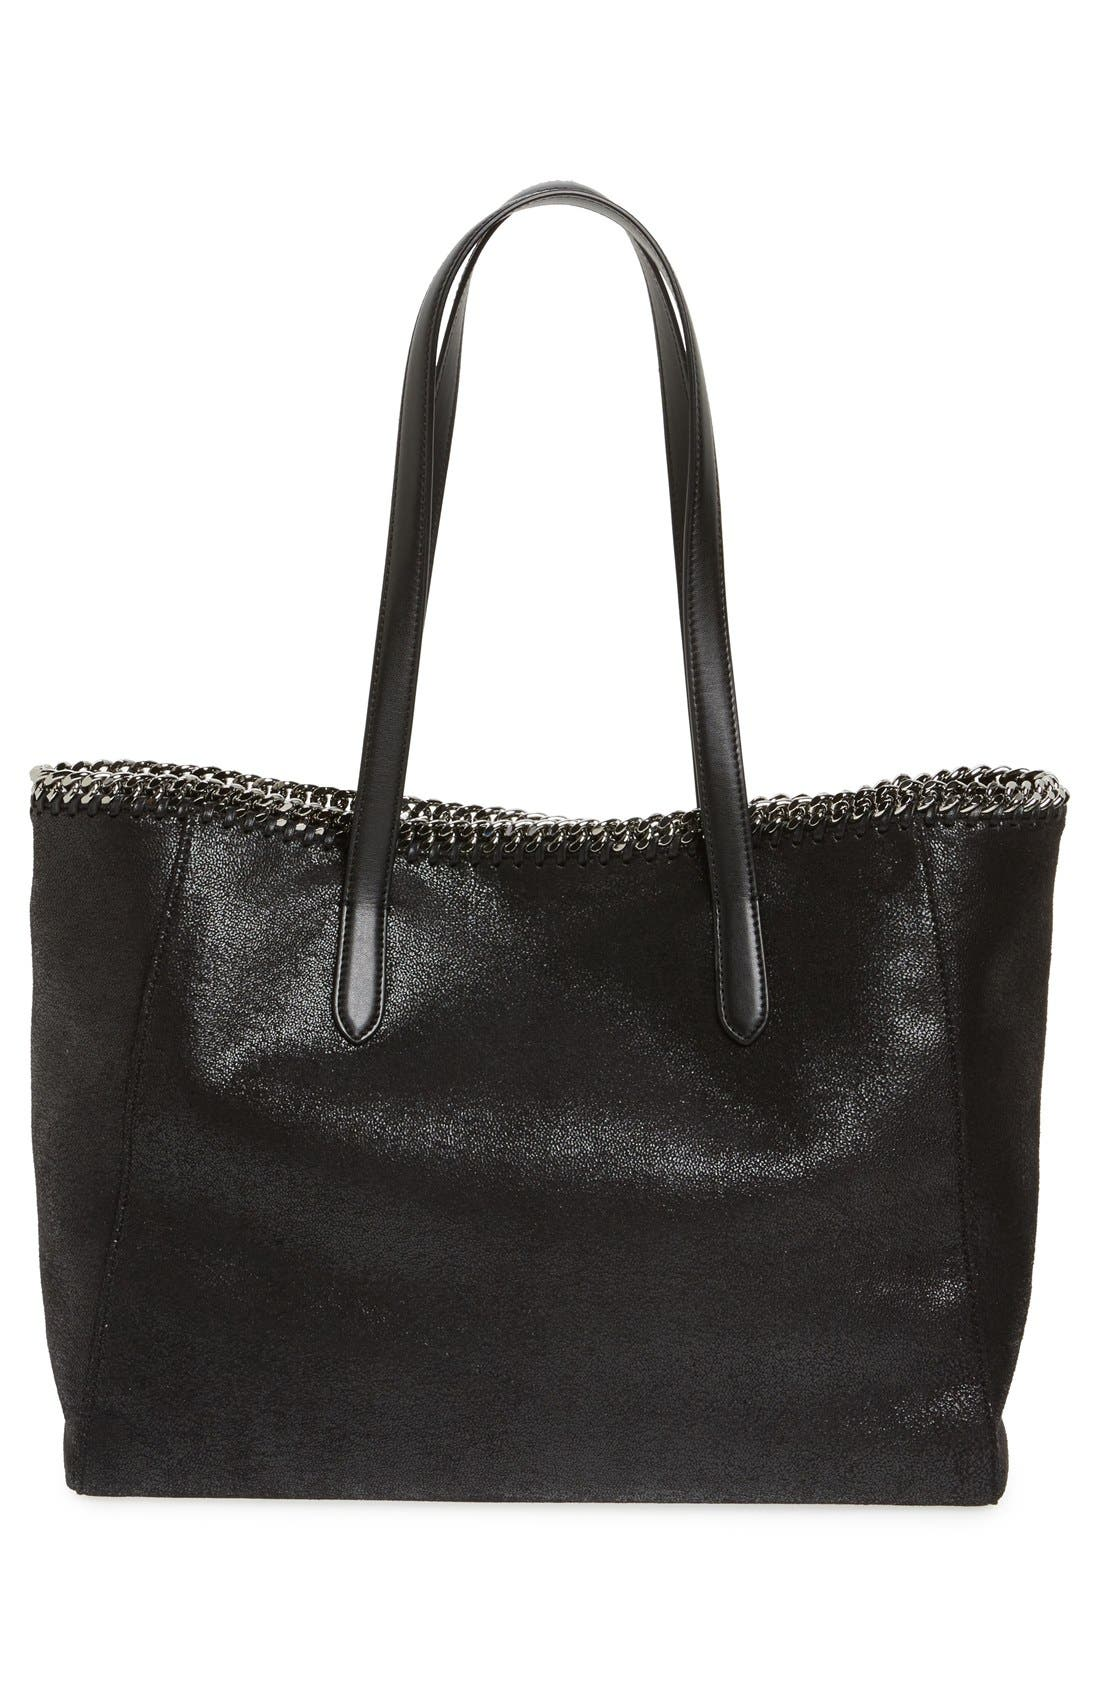 Alternate Image 3  - Stella McCartney 'Falabella - Shaggy Deer' Faux Leather Tote